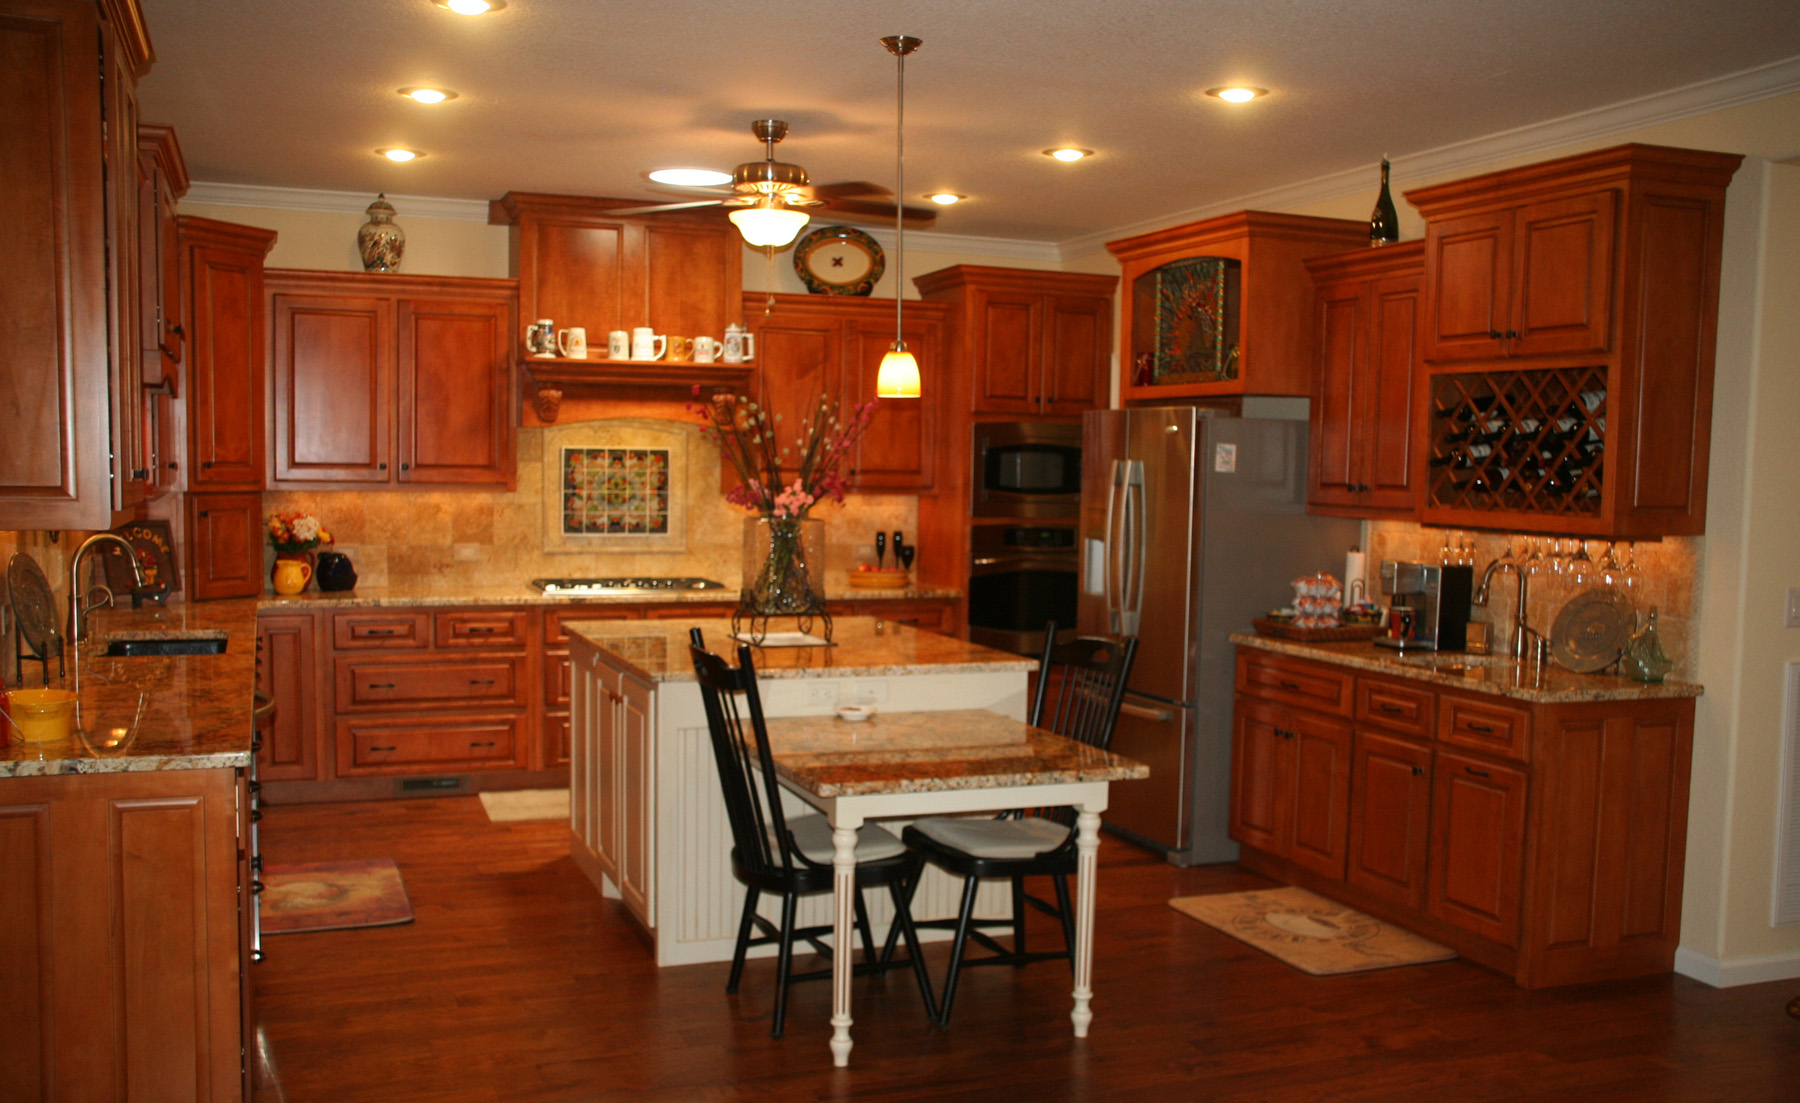 ... A Face Frame In Beaded Inset, Standard Overlay Or Full Overlay  Construction. In Order To Avoid Installation Calamities, Palmer Builds Custom  Cabinets ...